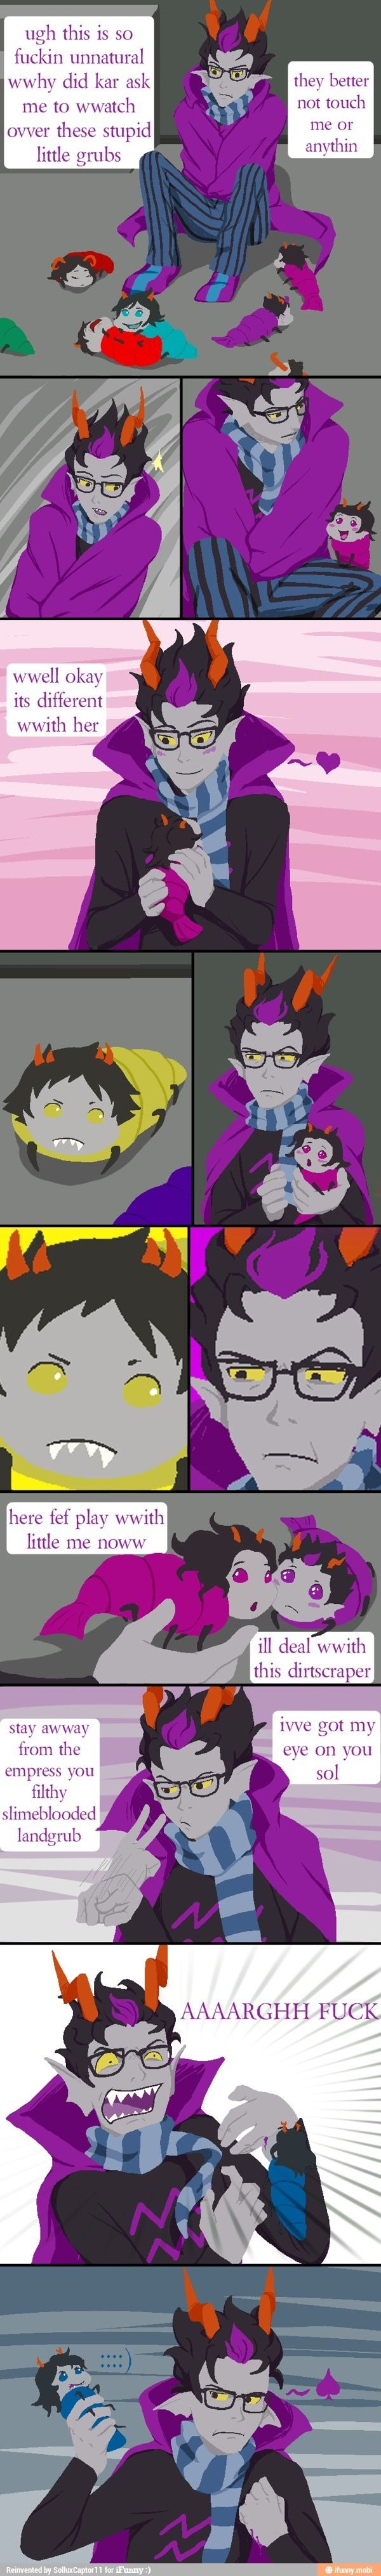 I love how little Vrisky bites him!!!! and how sollux looks evilly at him!!!!! <3 homestuck